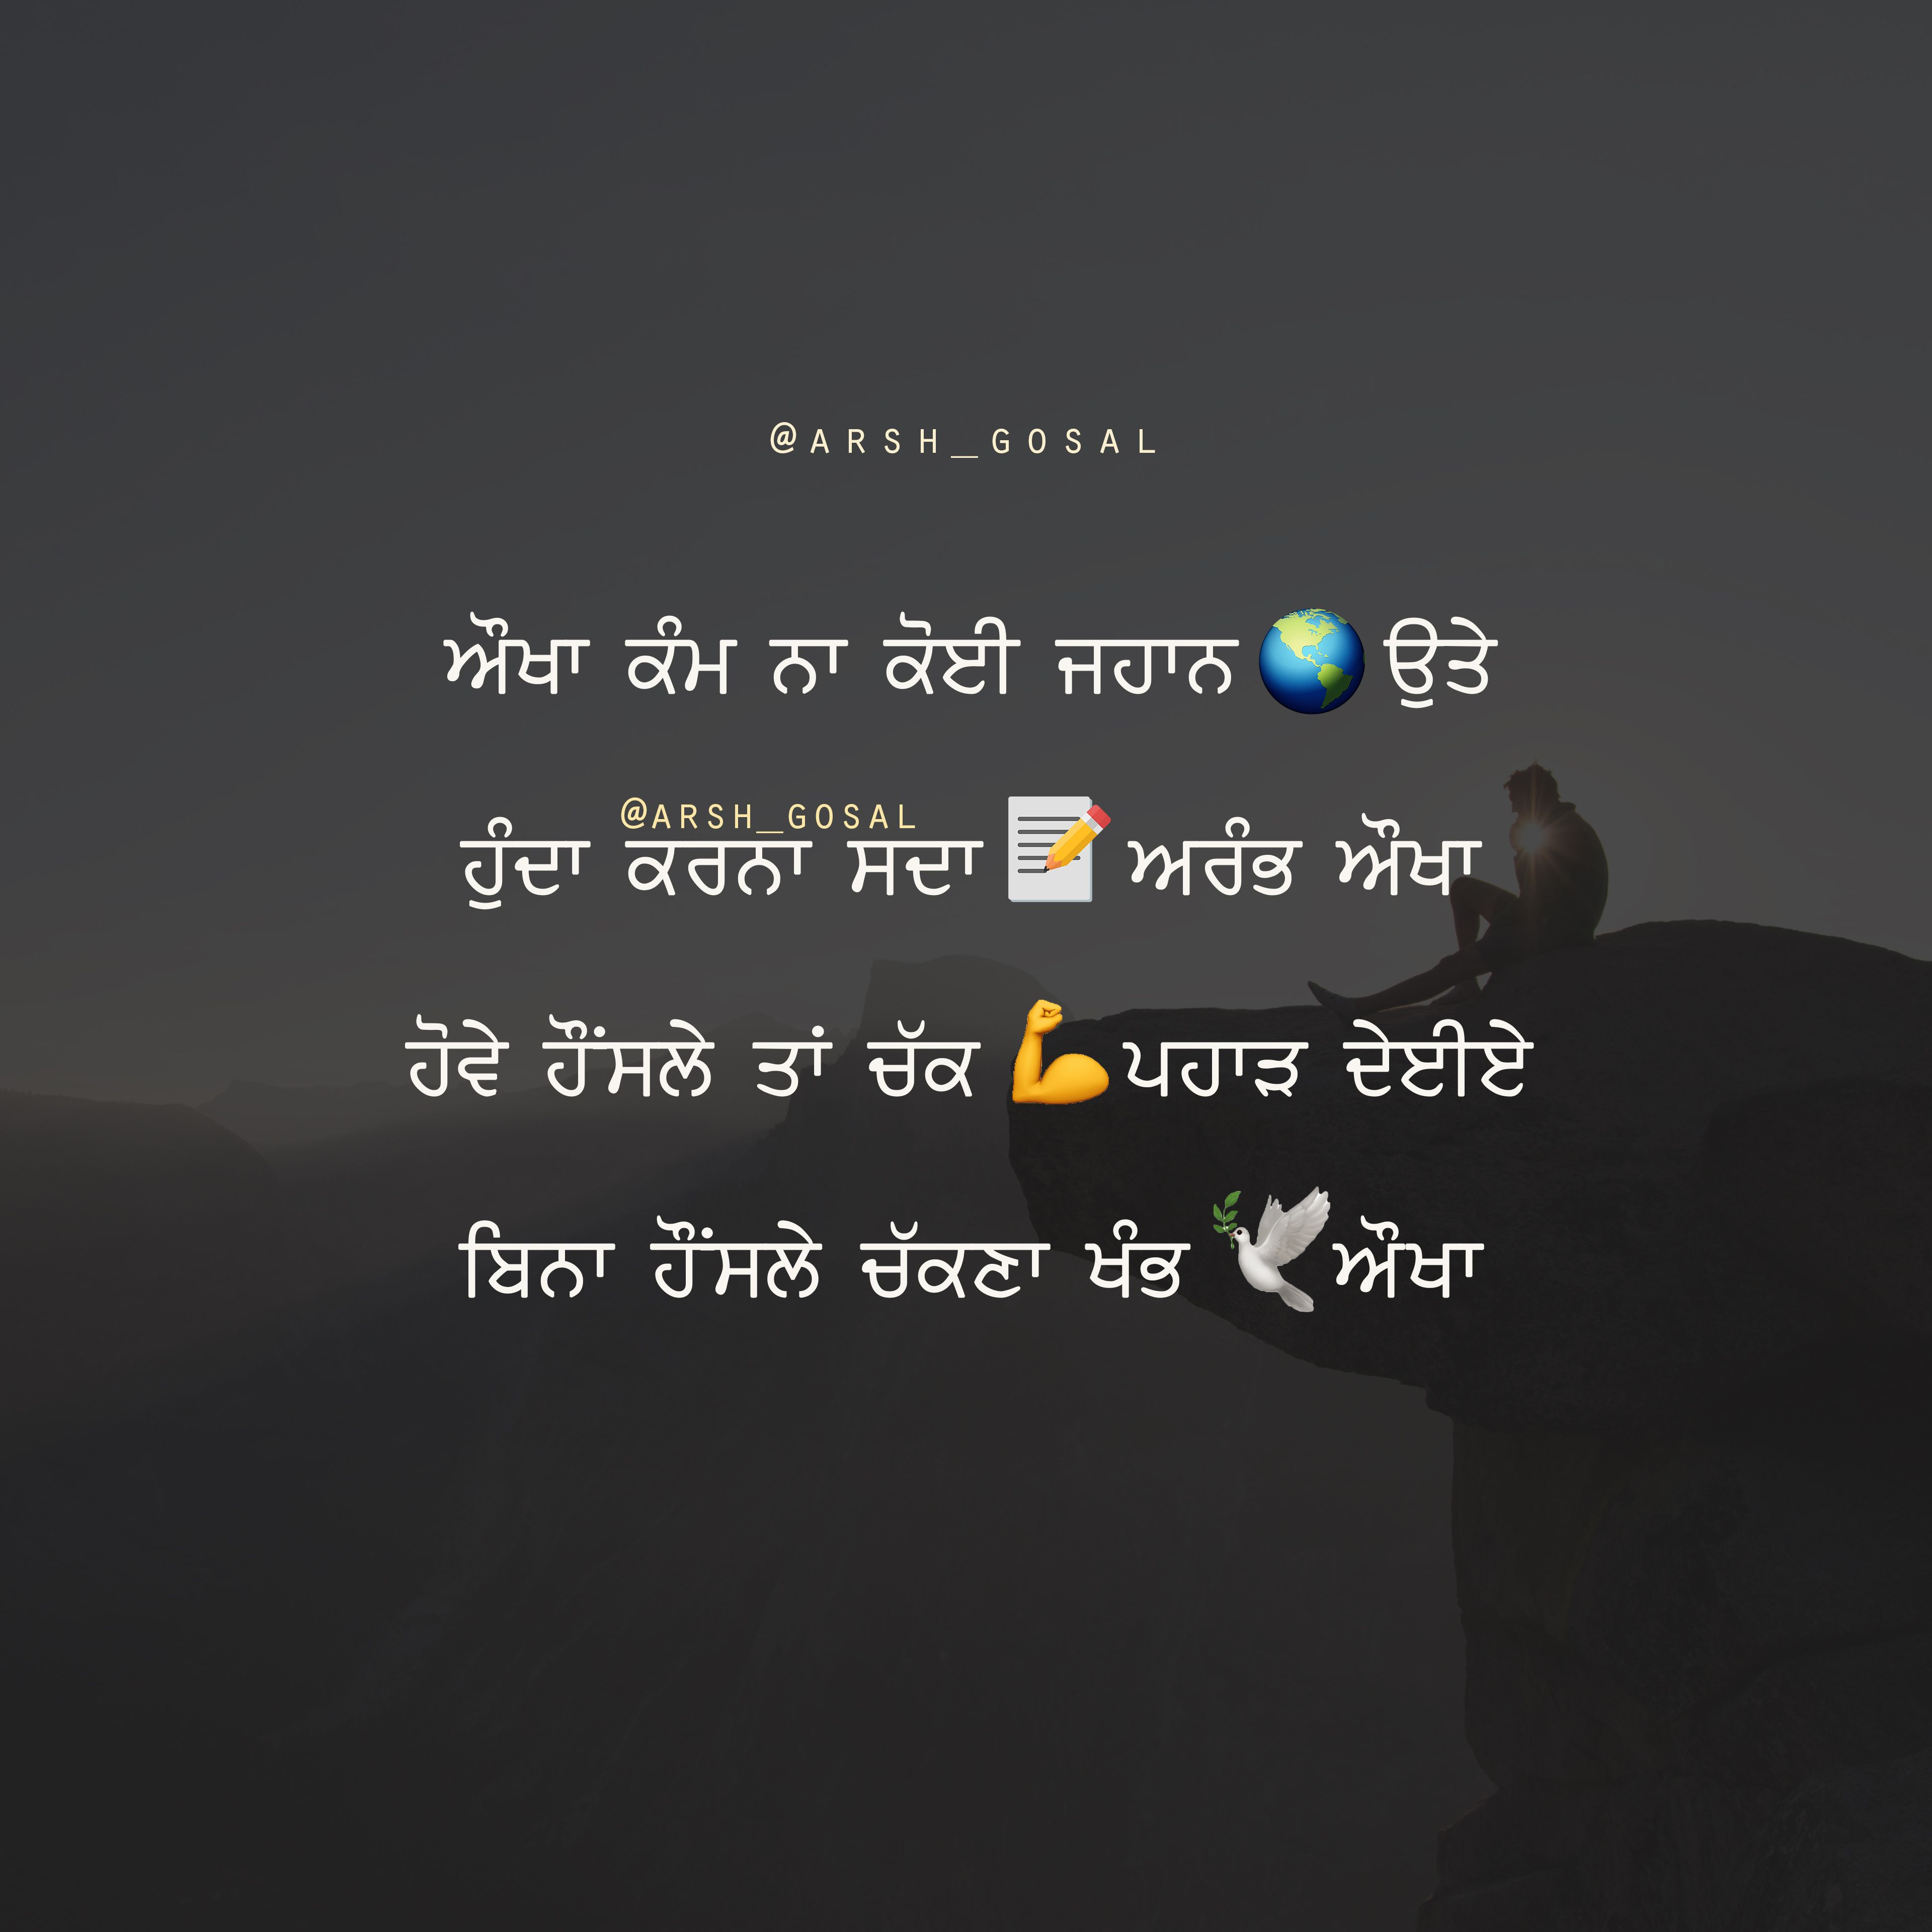 5+ Punjabi quotes ideas  punjabi quotes, quotes, punjabi love quotes